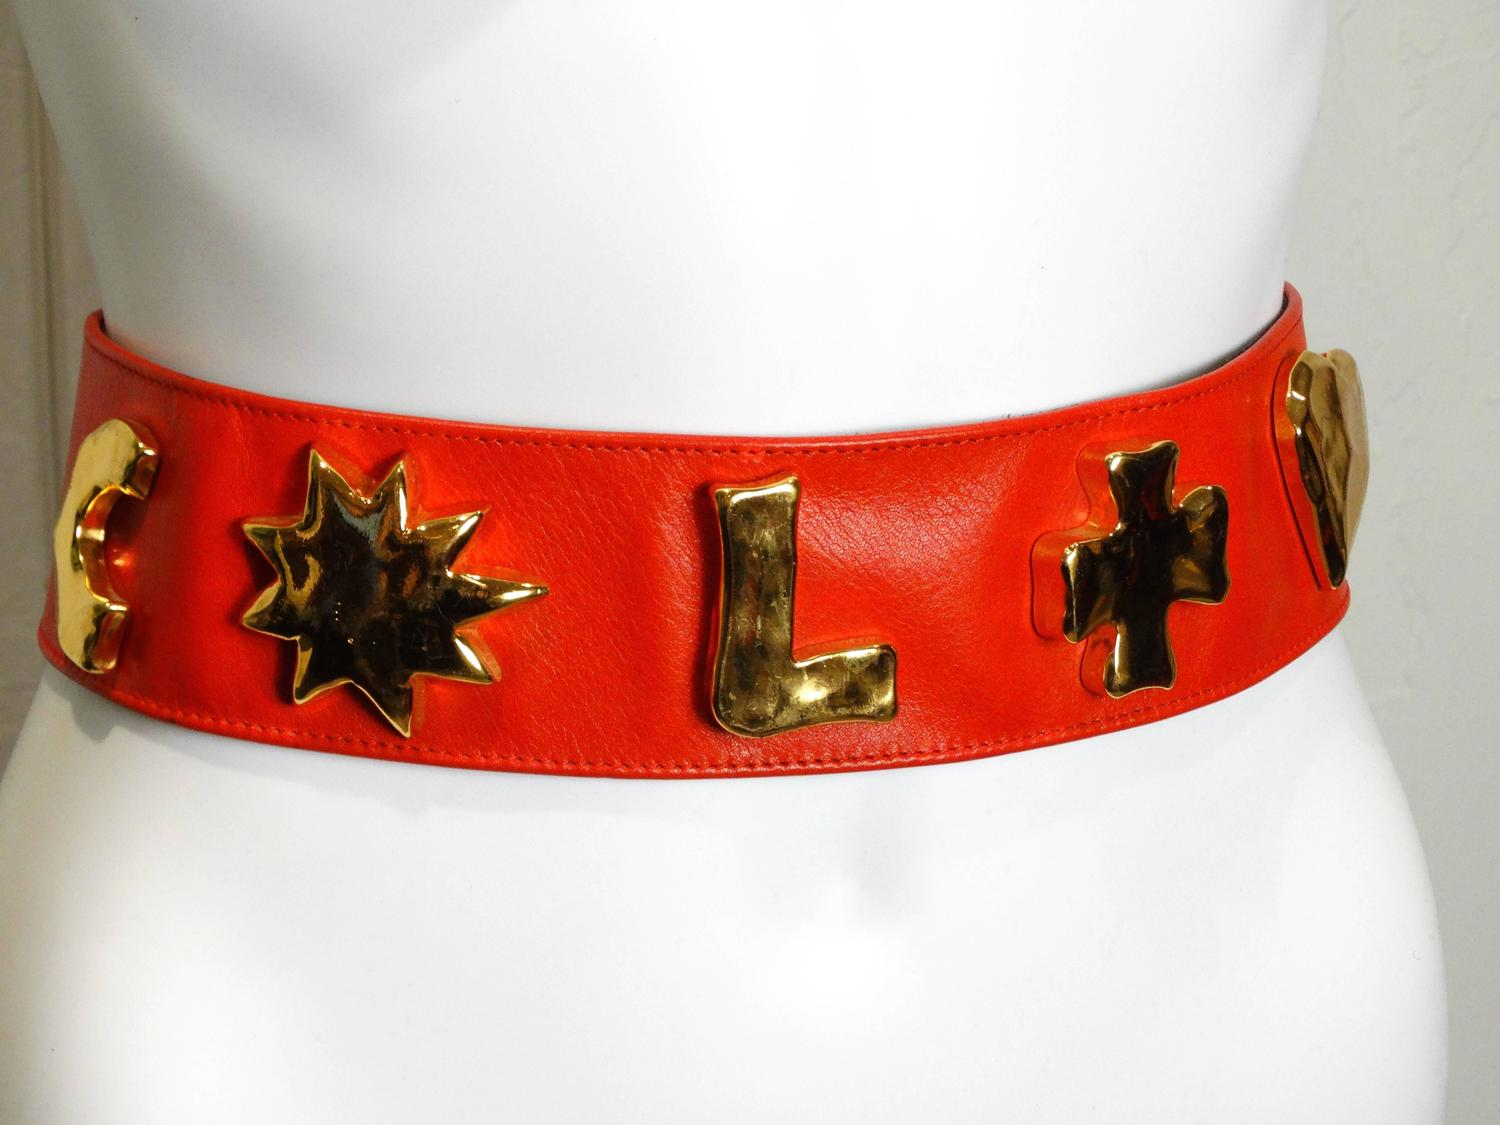 1990s christian lacroix wide red iconic gold symbol belt for sale at 1stdibs - Christian lacroix accessories ...